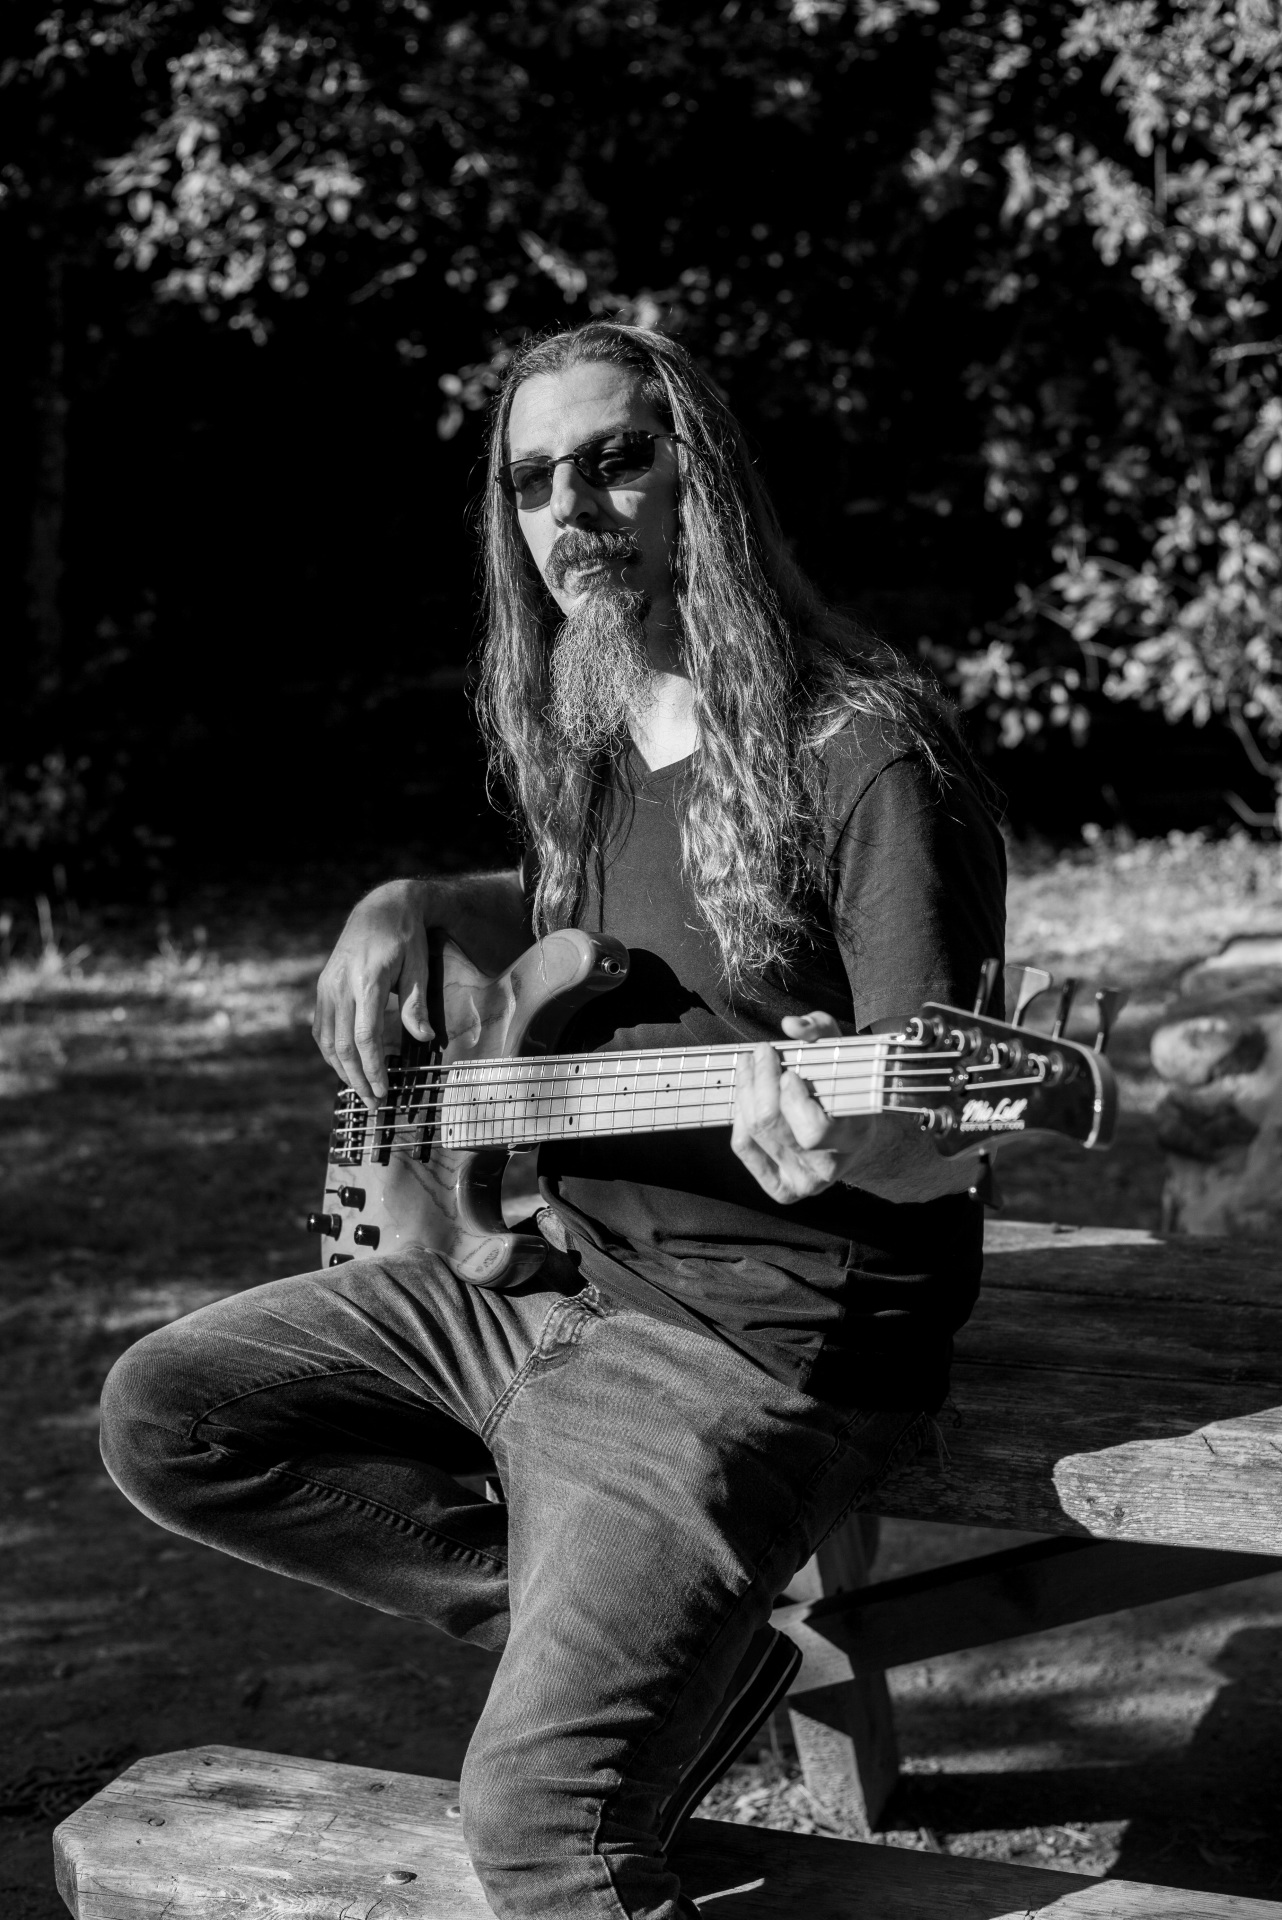 08-sitting-with-bass-l1001915-by-arthur-rosato